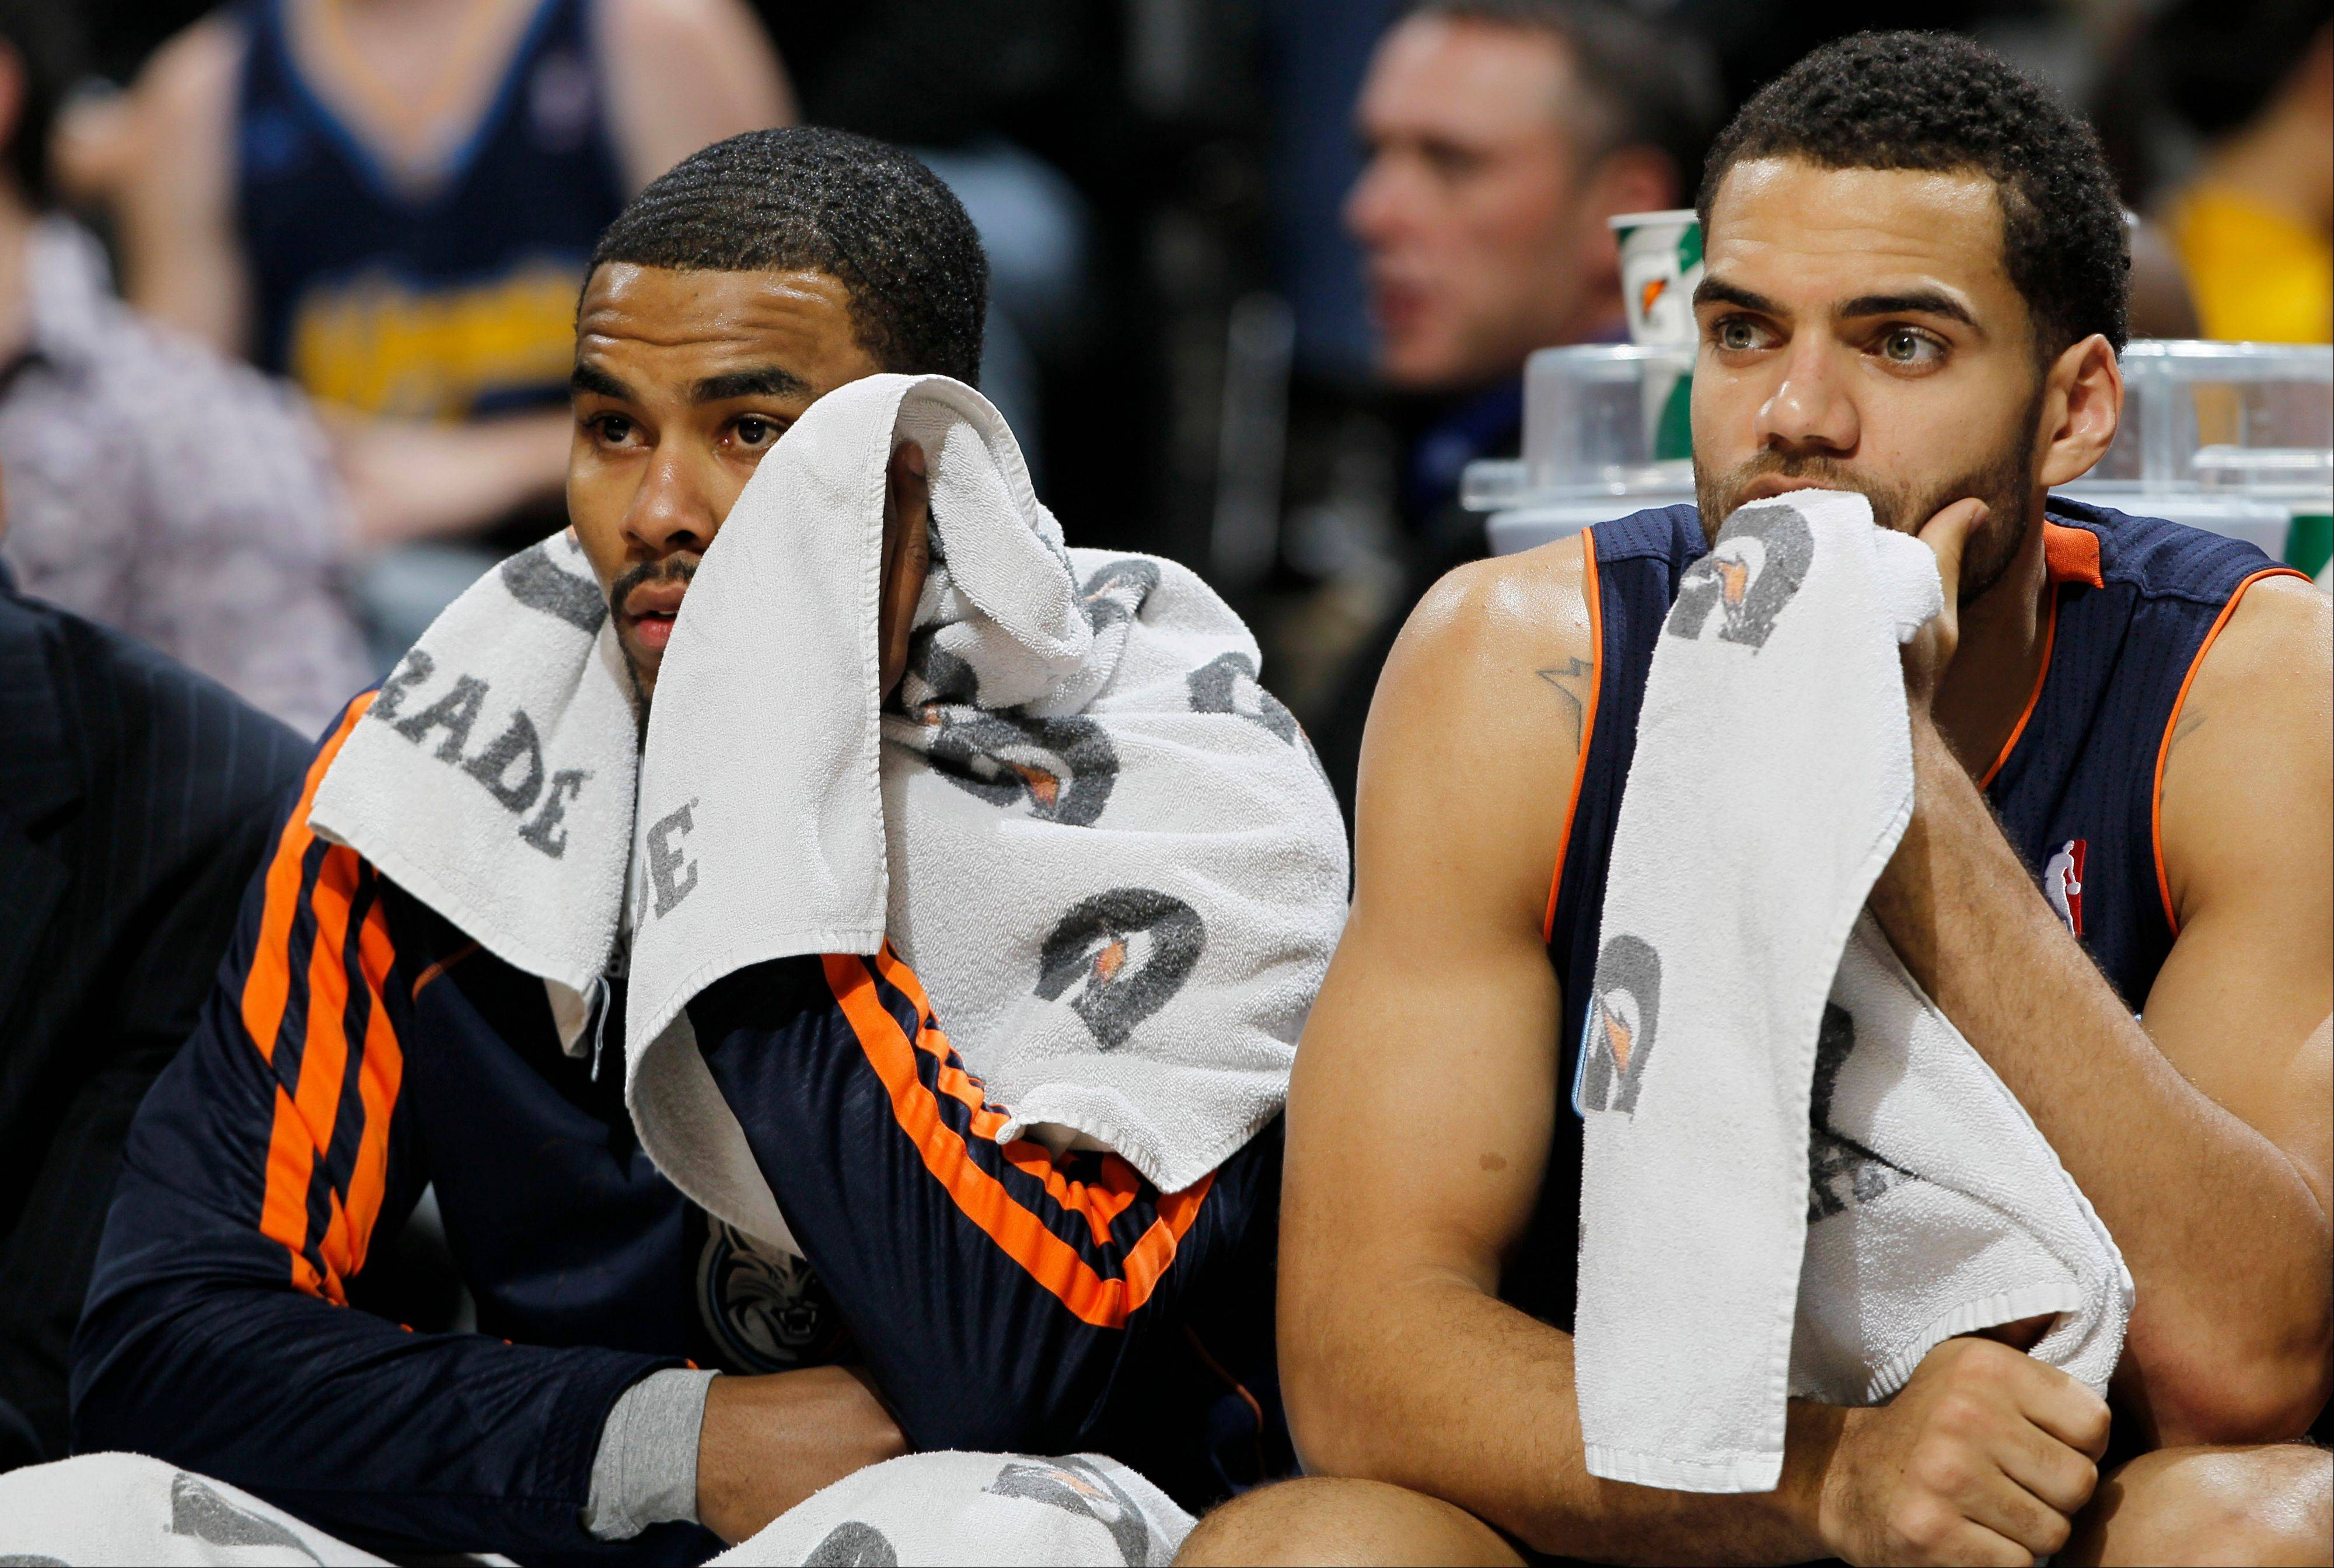 Charlotte Bobcats guard Ramon Sessions, left, and rookie forward Jeff Taylor watch as time runs out in Denver's 110-88 victory over the Bobcats last Saturday. Michael Jordan's team, which has lost 16 straight games, plays Brooklyn tonight.